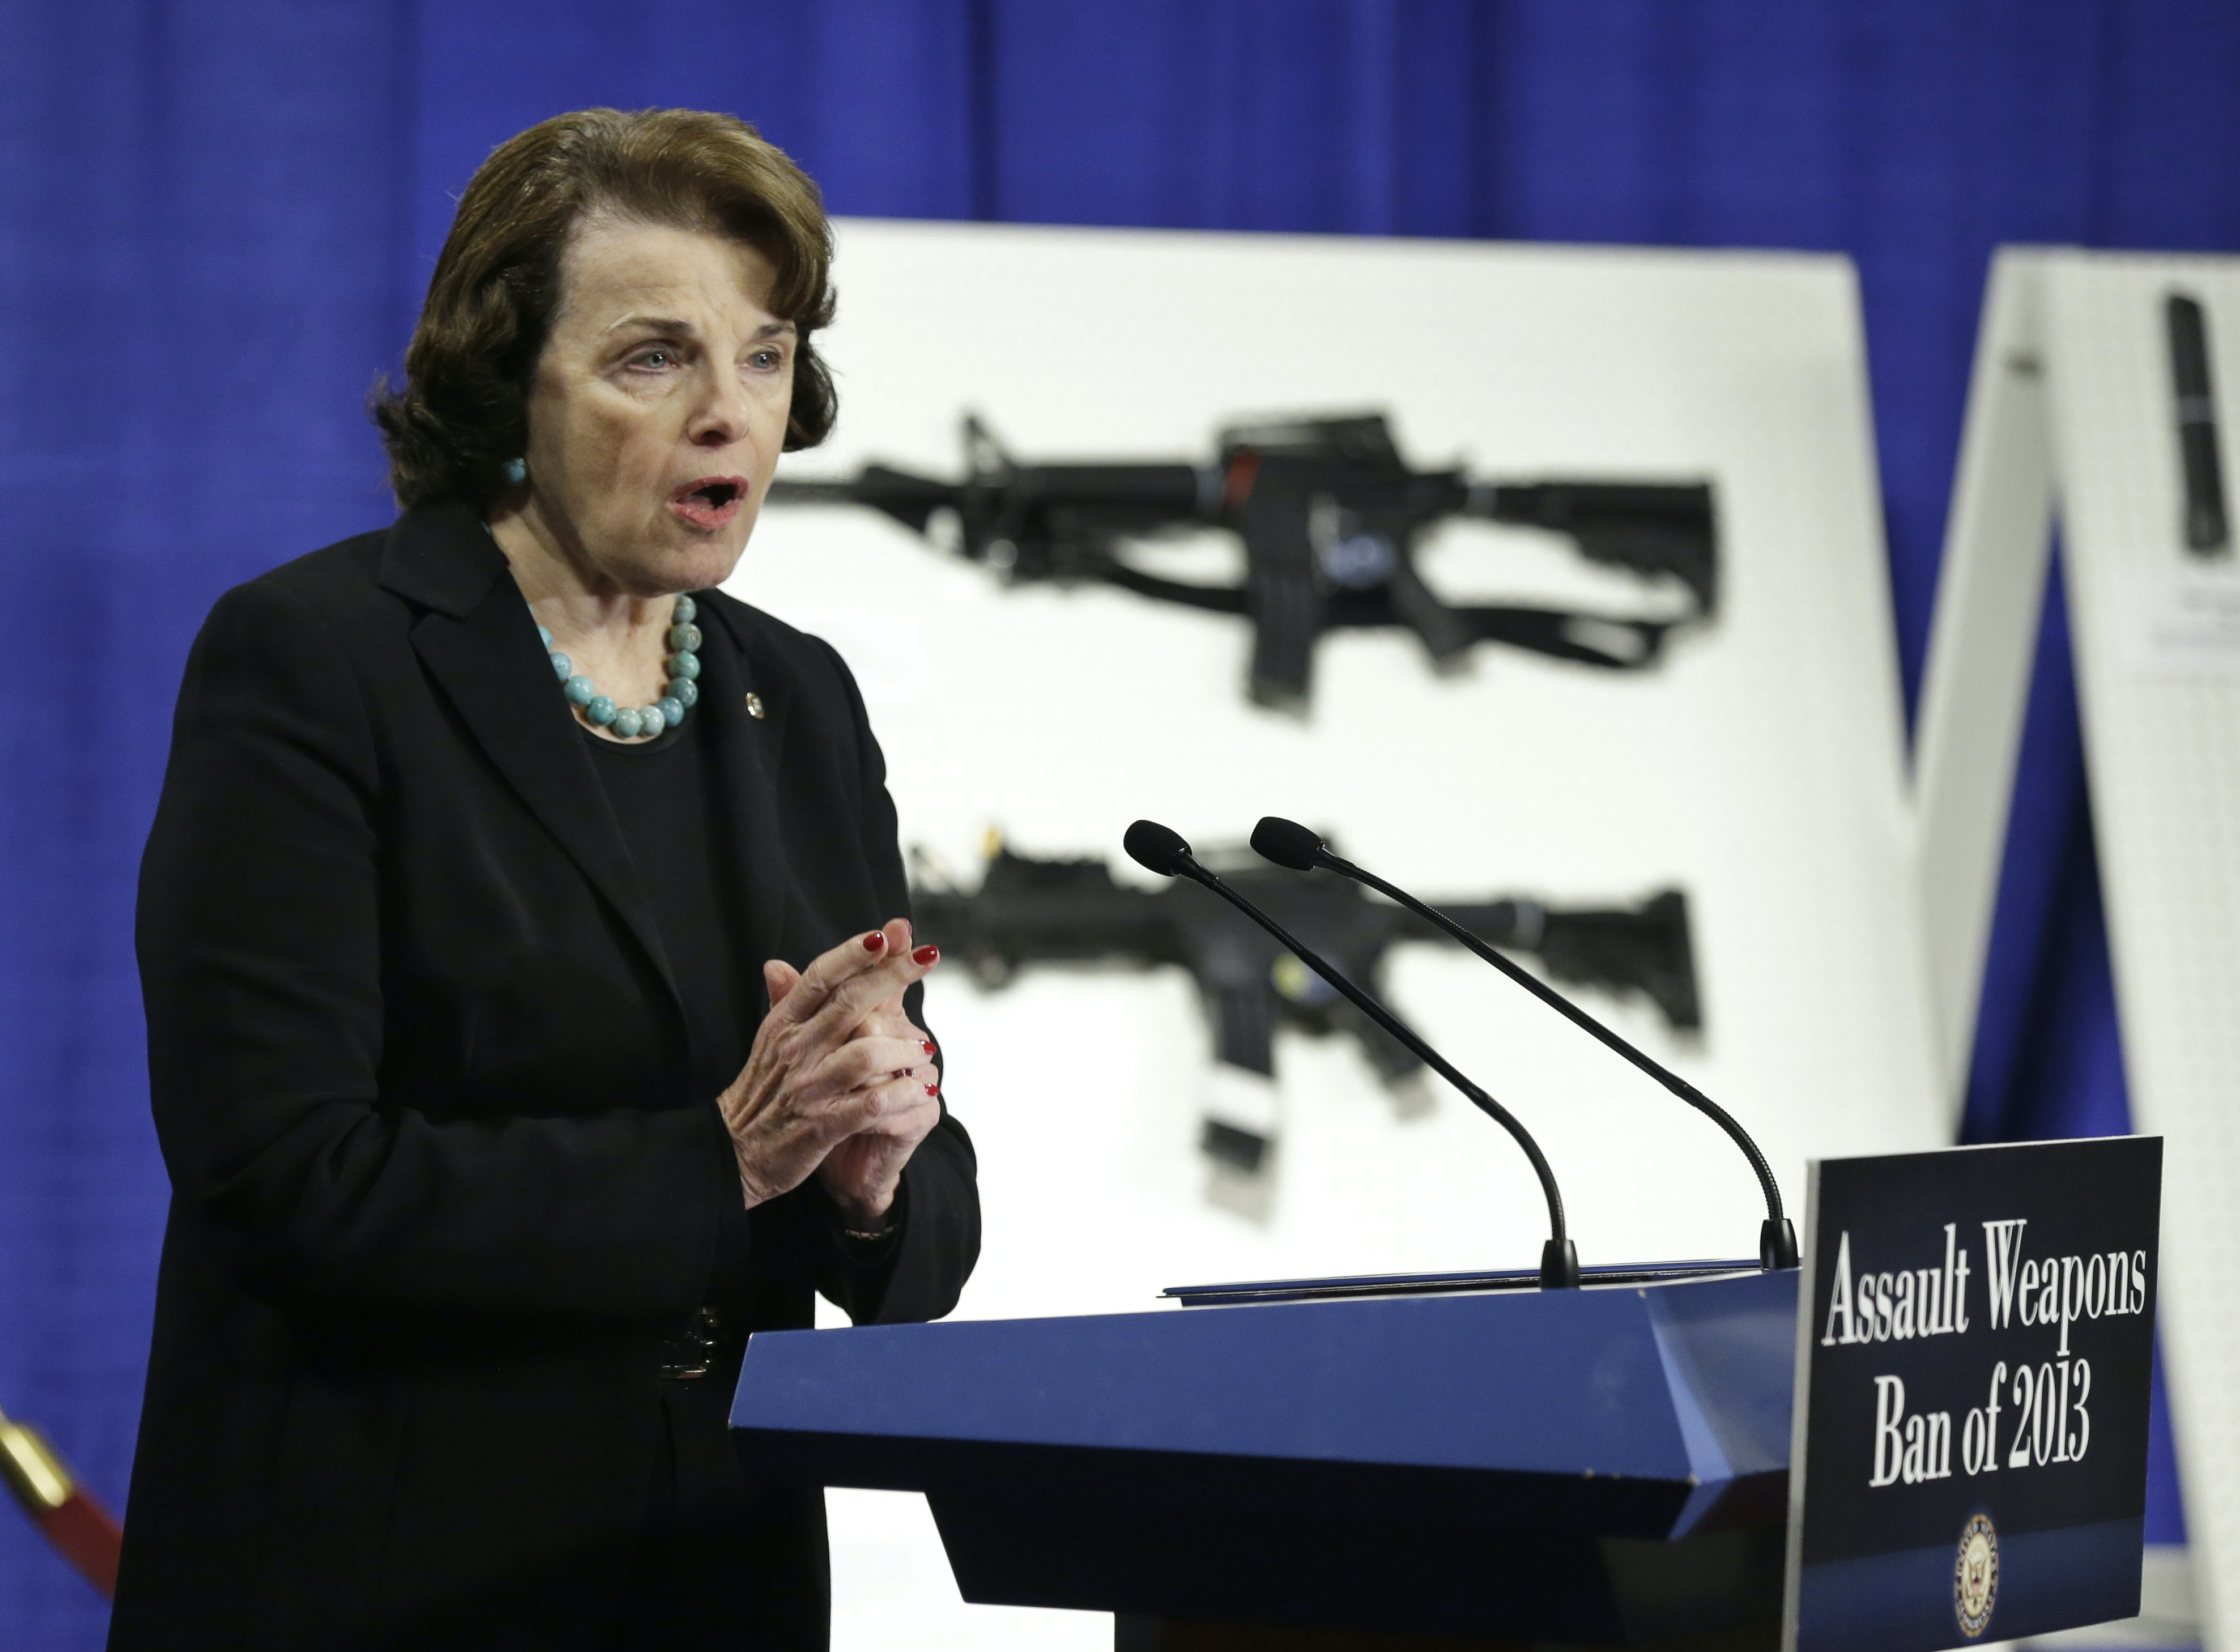 Sen. Dianne Feinstein, D-Calif., speaks during a news conference in 2013 to introduce legislation on assault weapons and high-capacity ammunition feeding devices. AP/Manuel Balce Ceneta